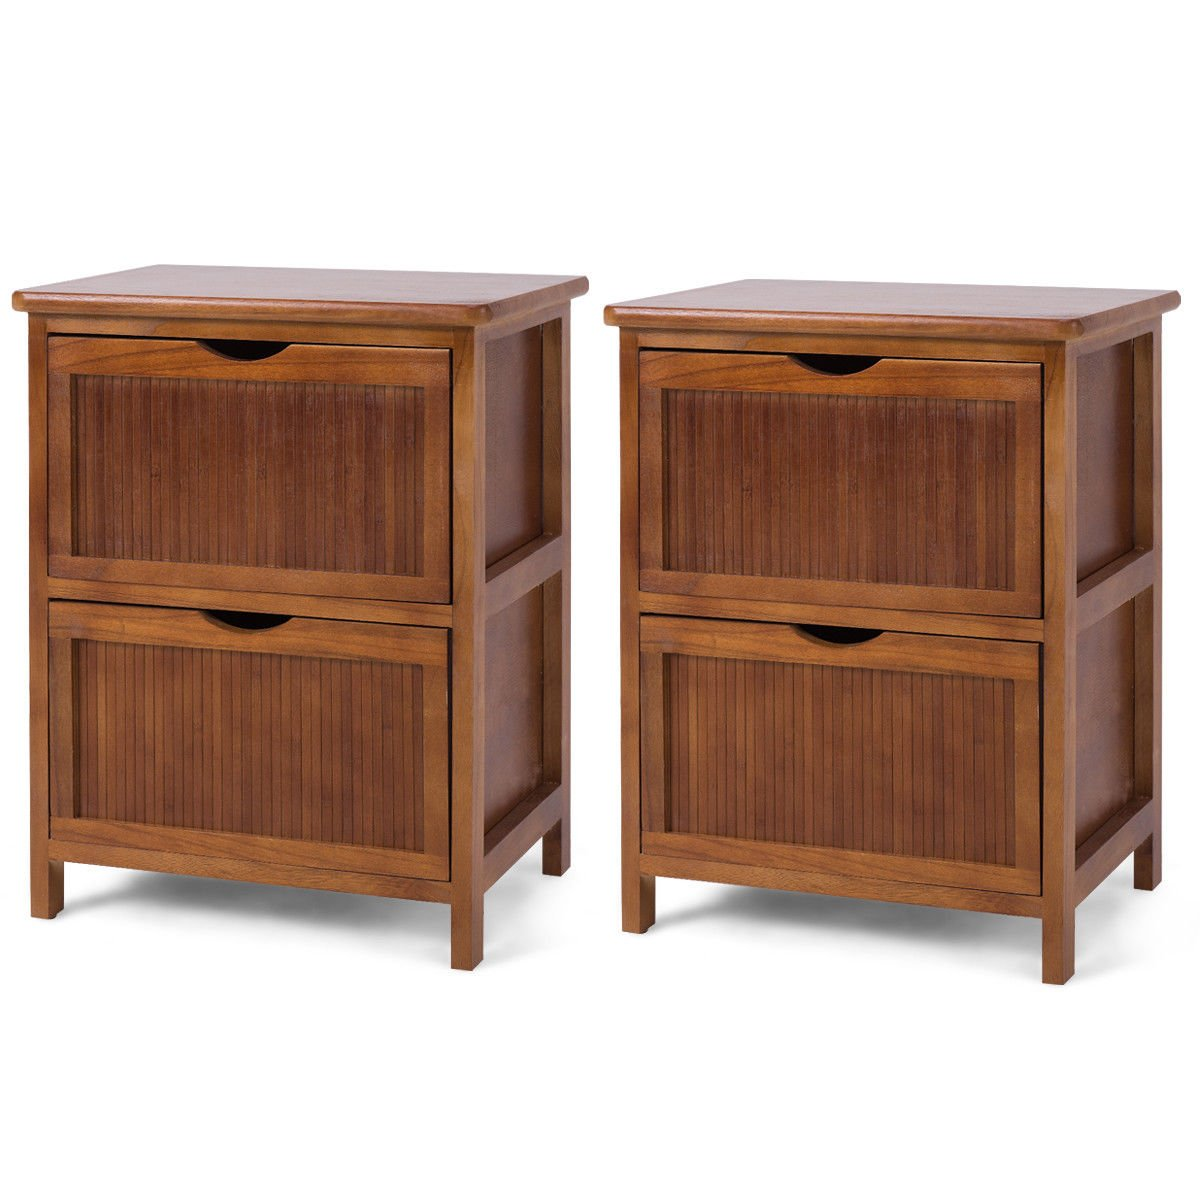 Giantex Set of 2 Night Stand End Table Wood Sofa Bed Beside Table File Cabinet Contemporary Vintage Bedroom Living Room Cabinet w/ 2 Drawers